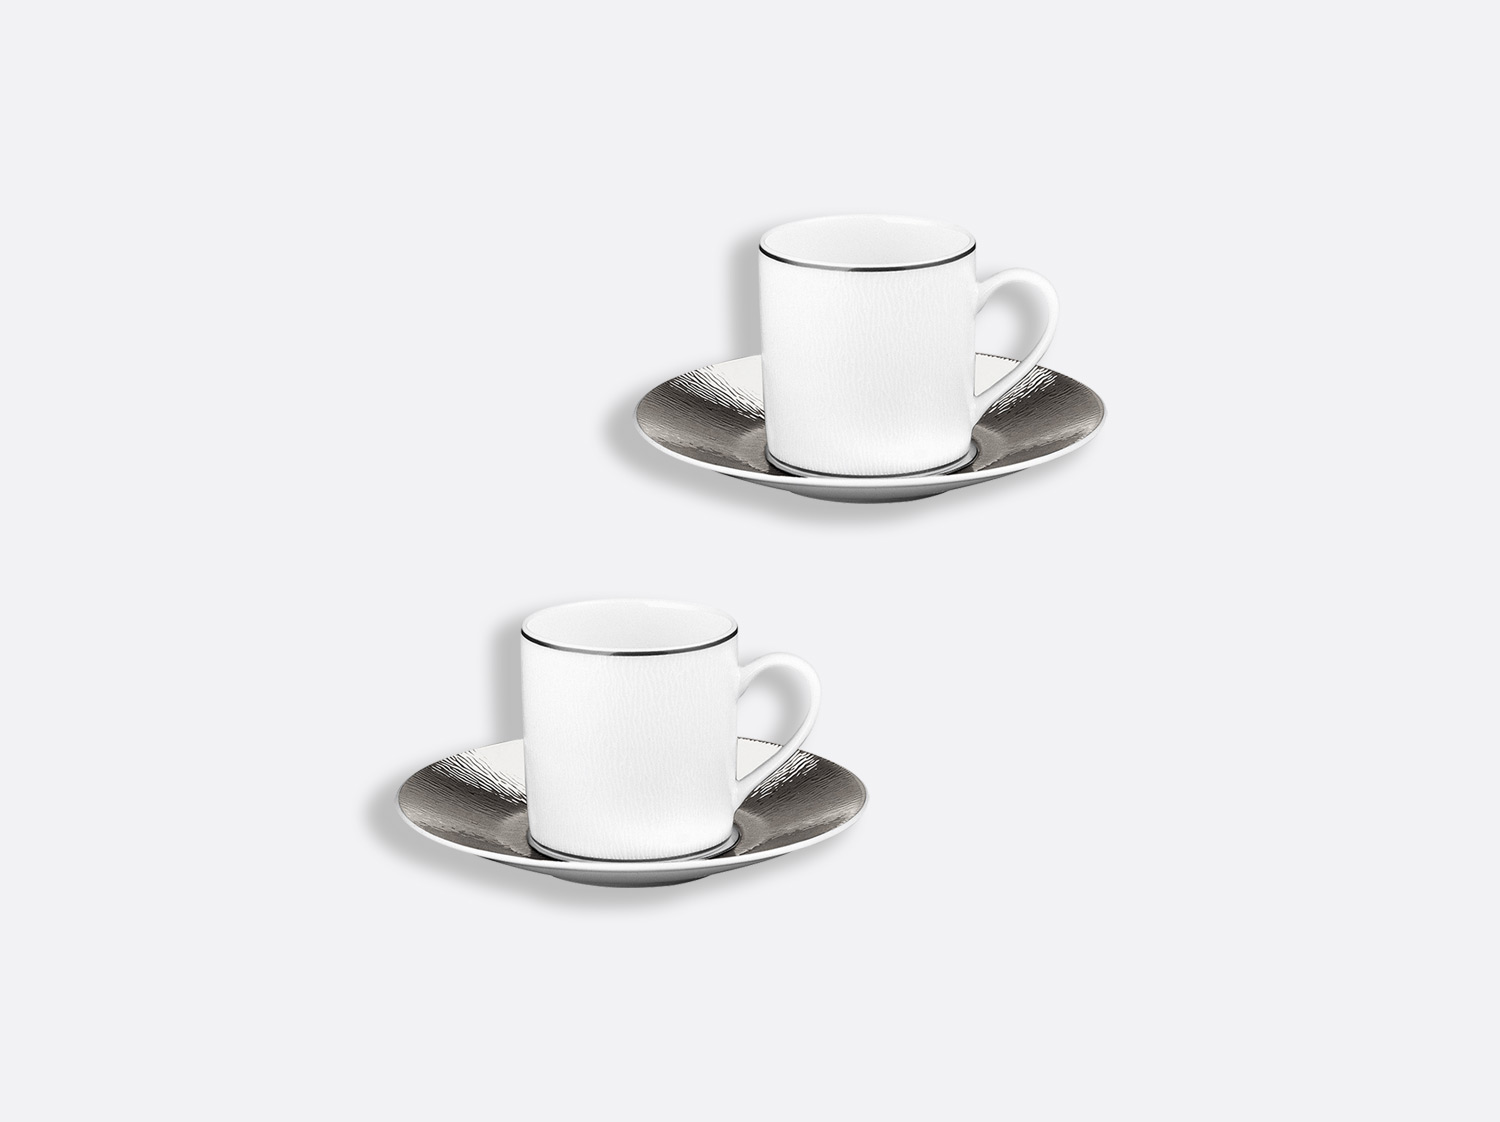 China Espresso cup and saucer gift box - 2.8 Oz - Set of 2 of the collection Dune | Bernardaud